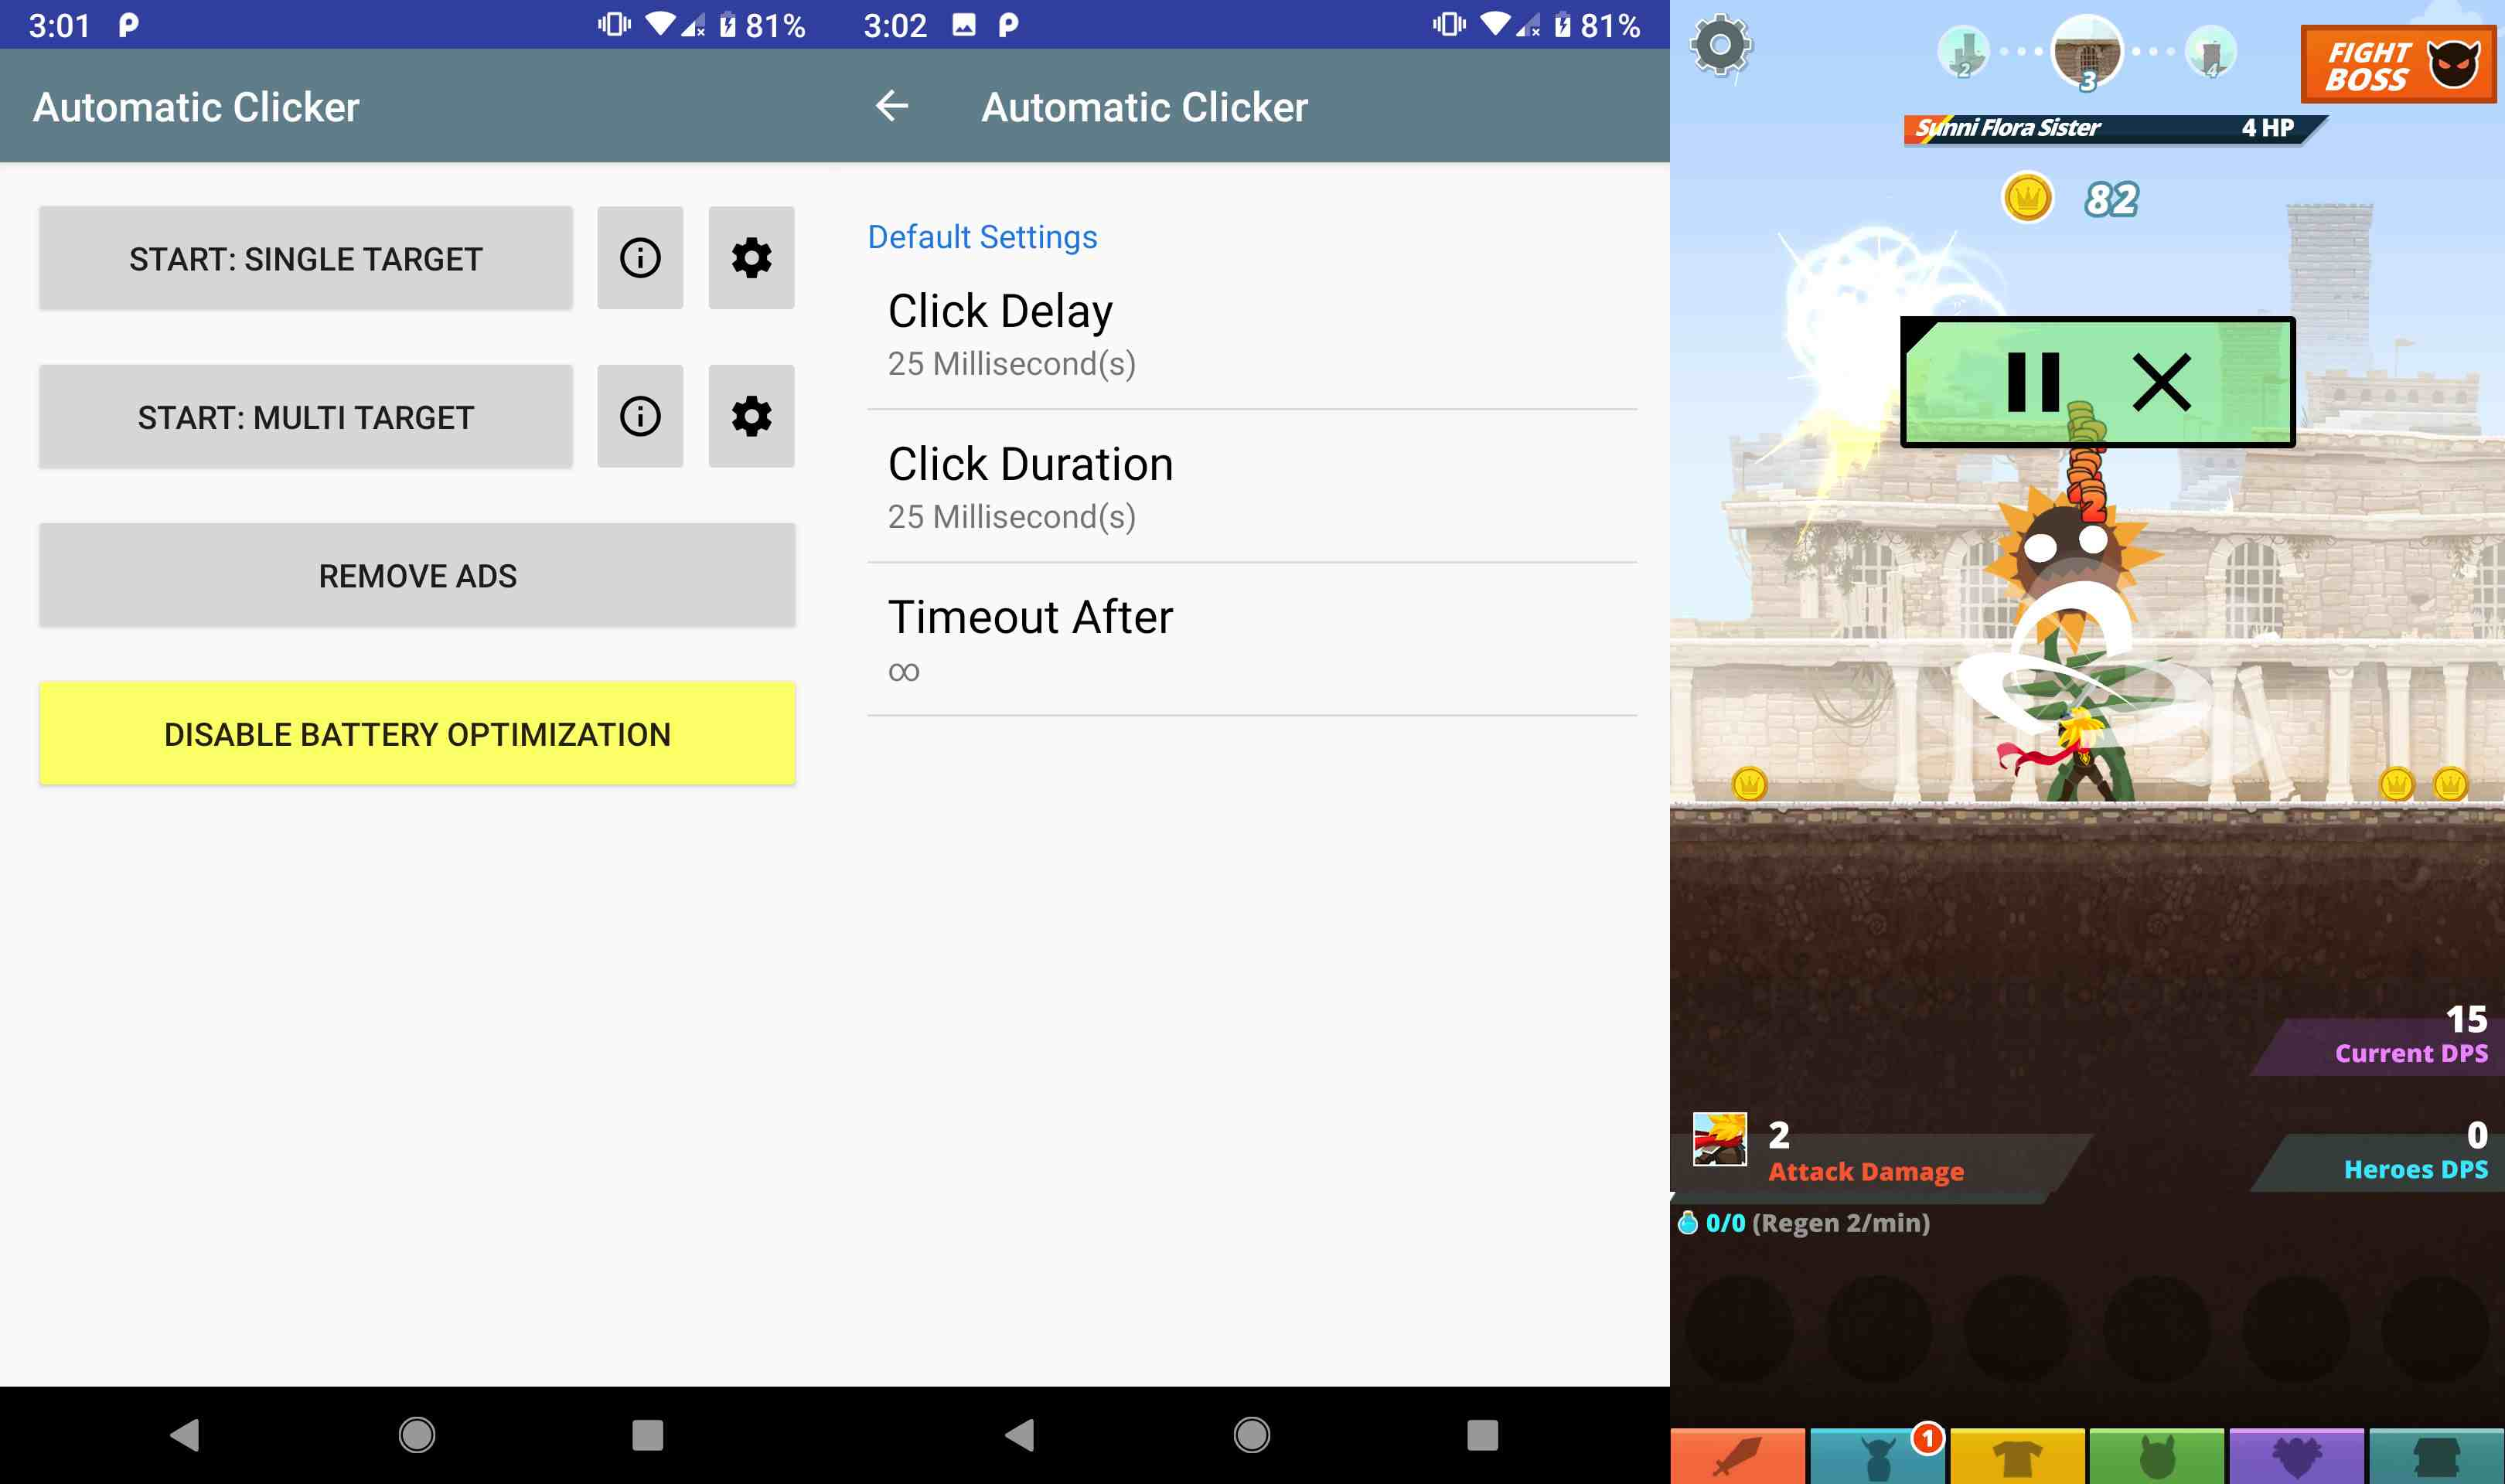 The 8 Best Auto-Clicker Apps on Android (Non-Rooted Phones)